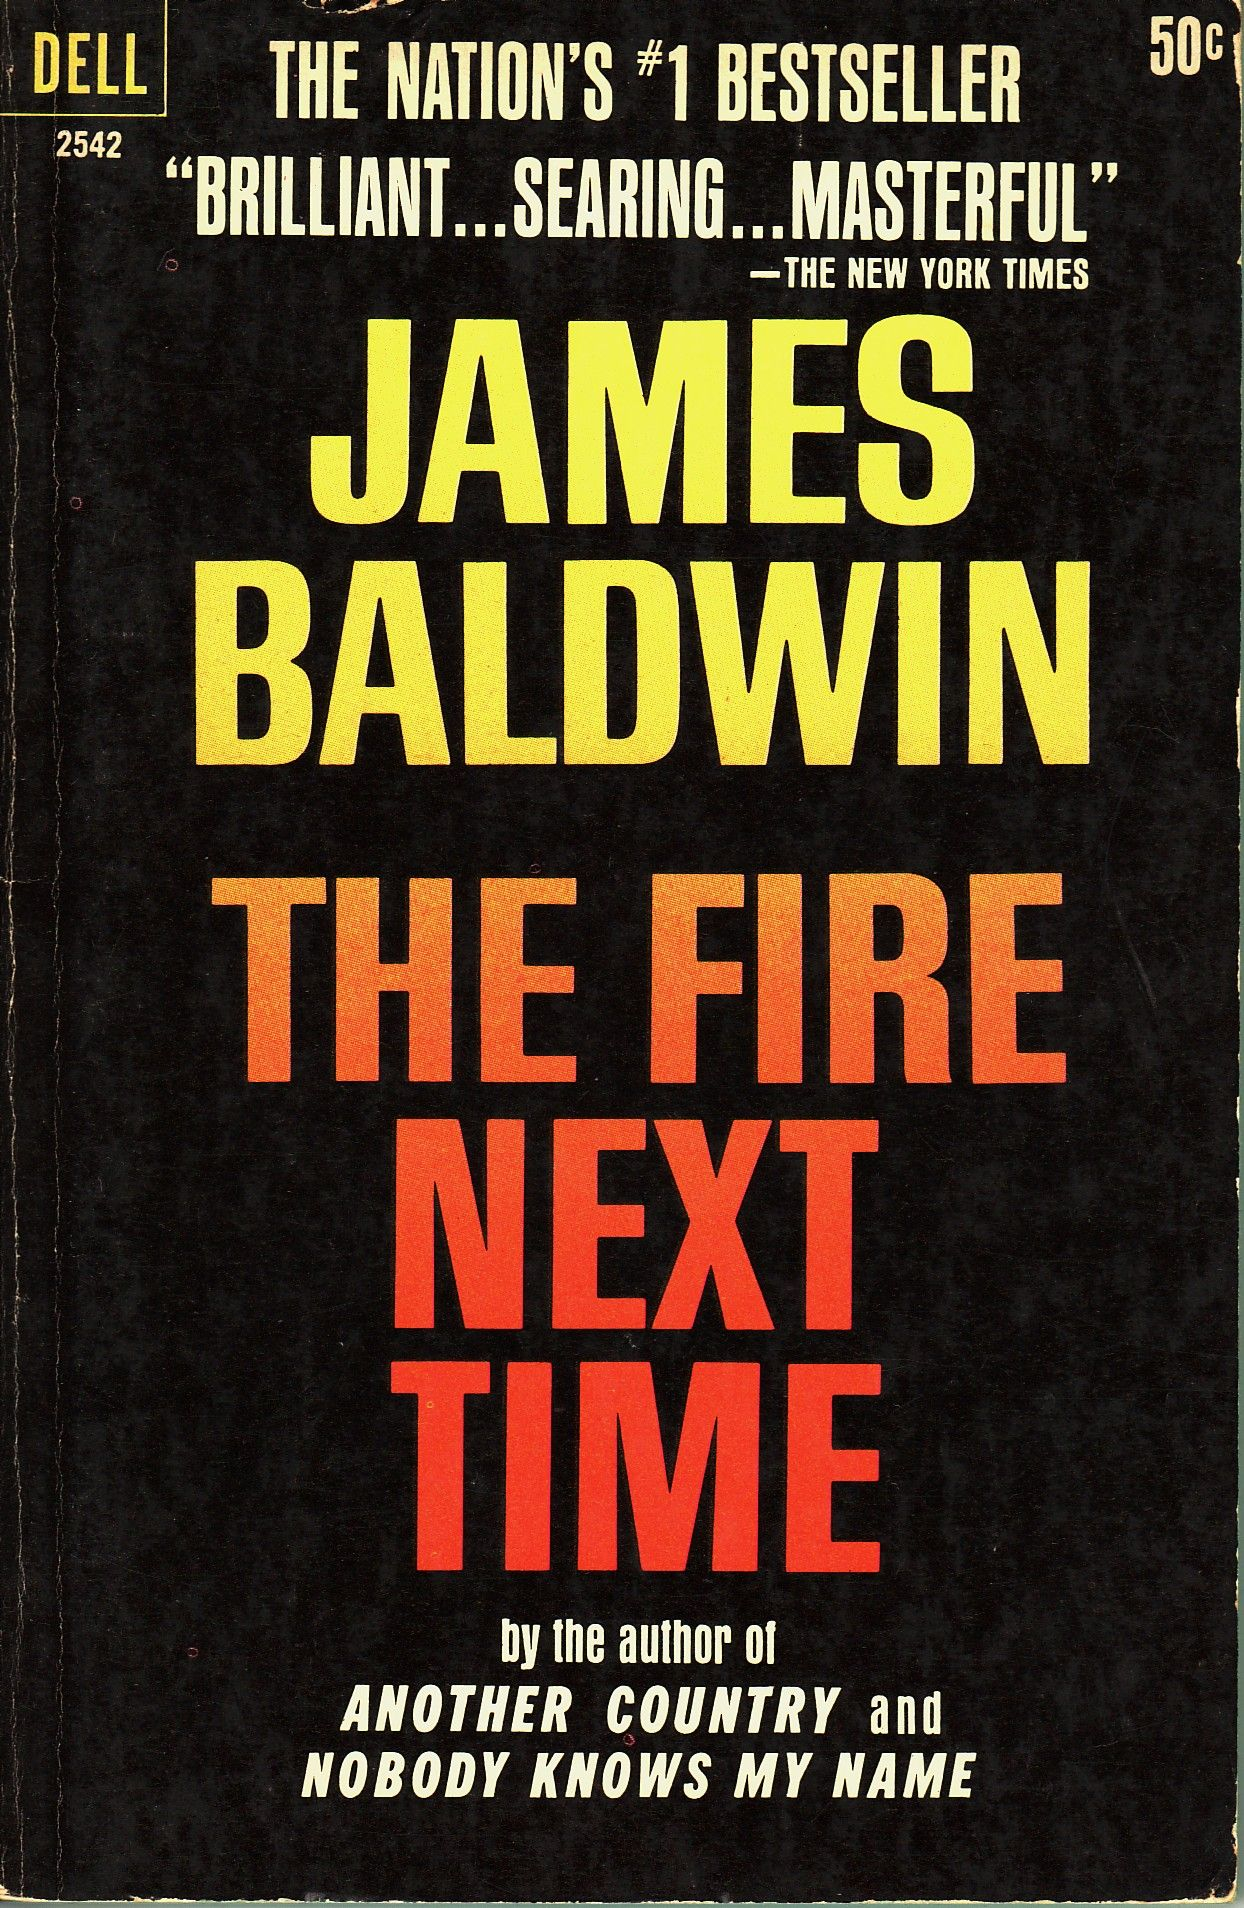 best images about james baldwin james baldwin 17 best images about james baldwin james baldwin birthdays and american history